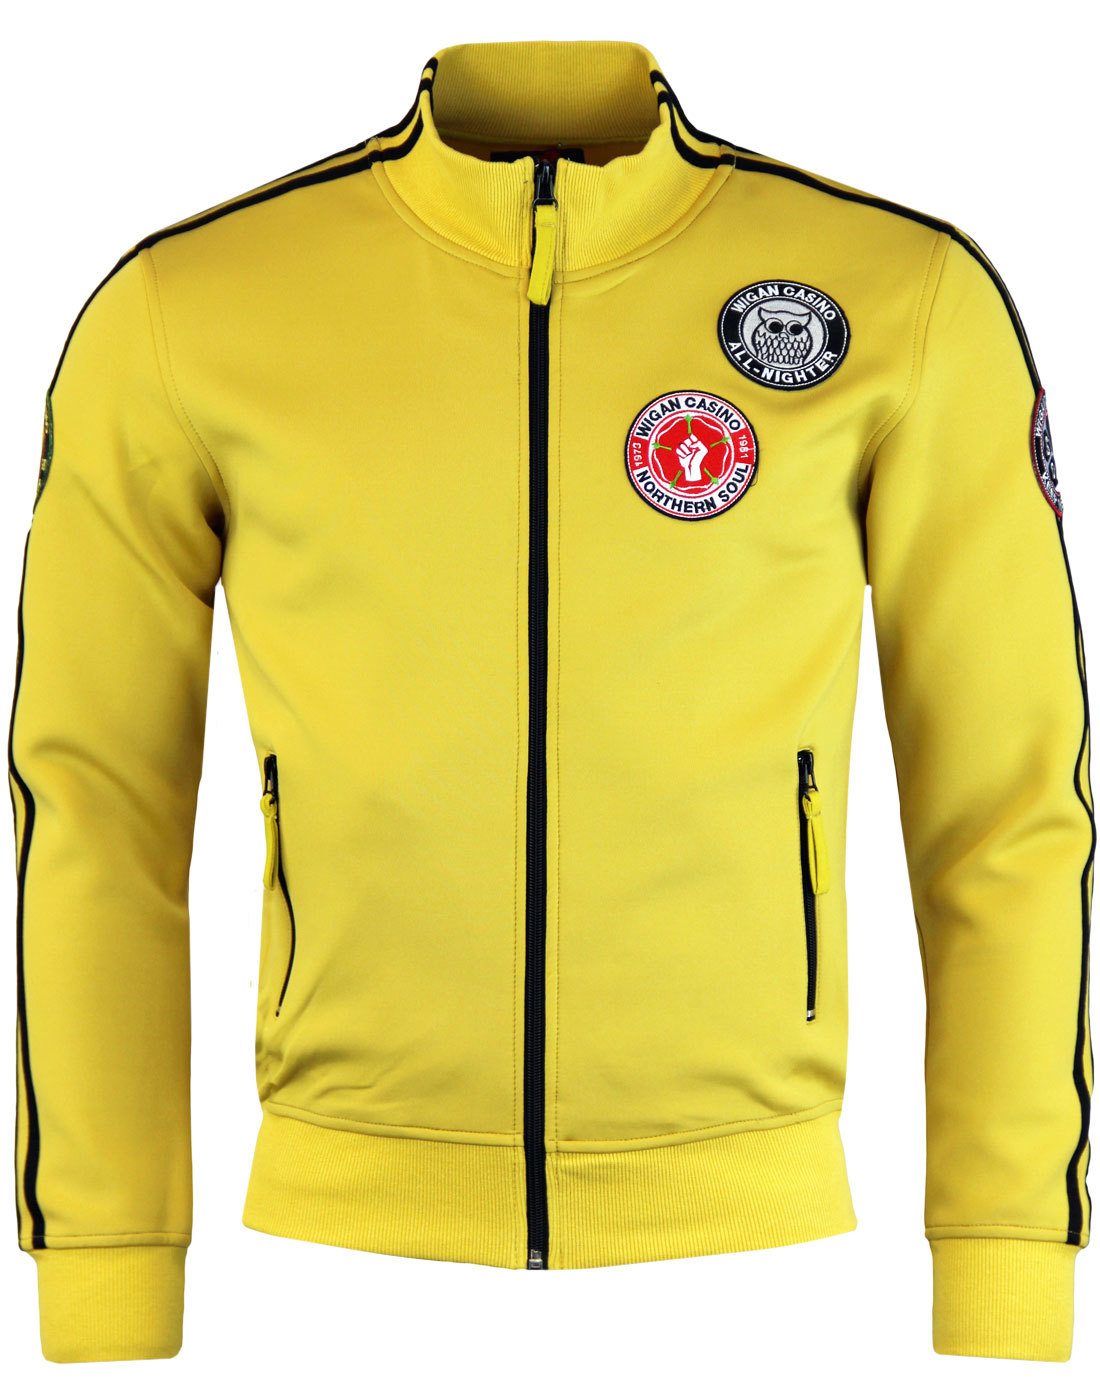 WIGAN CASINO Northern Soul Patch Track Top GOLD